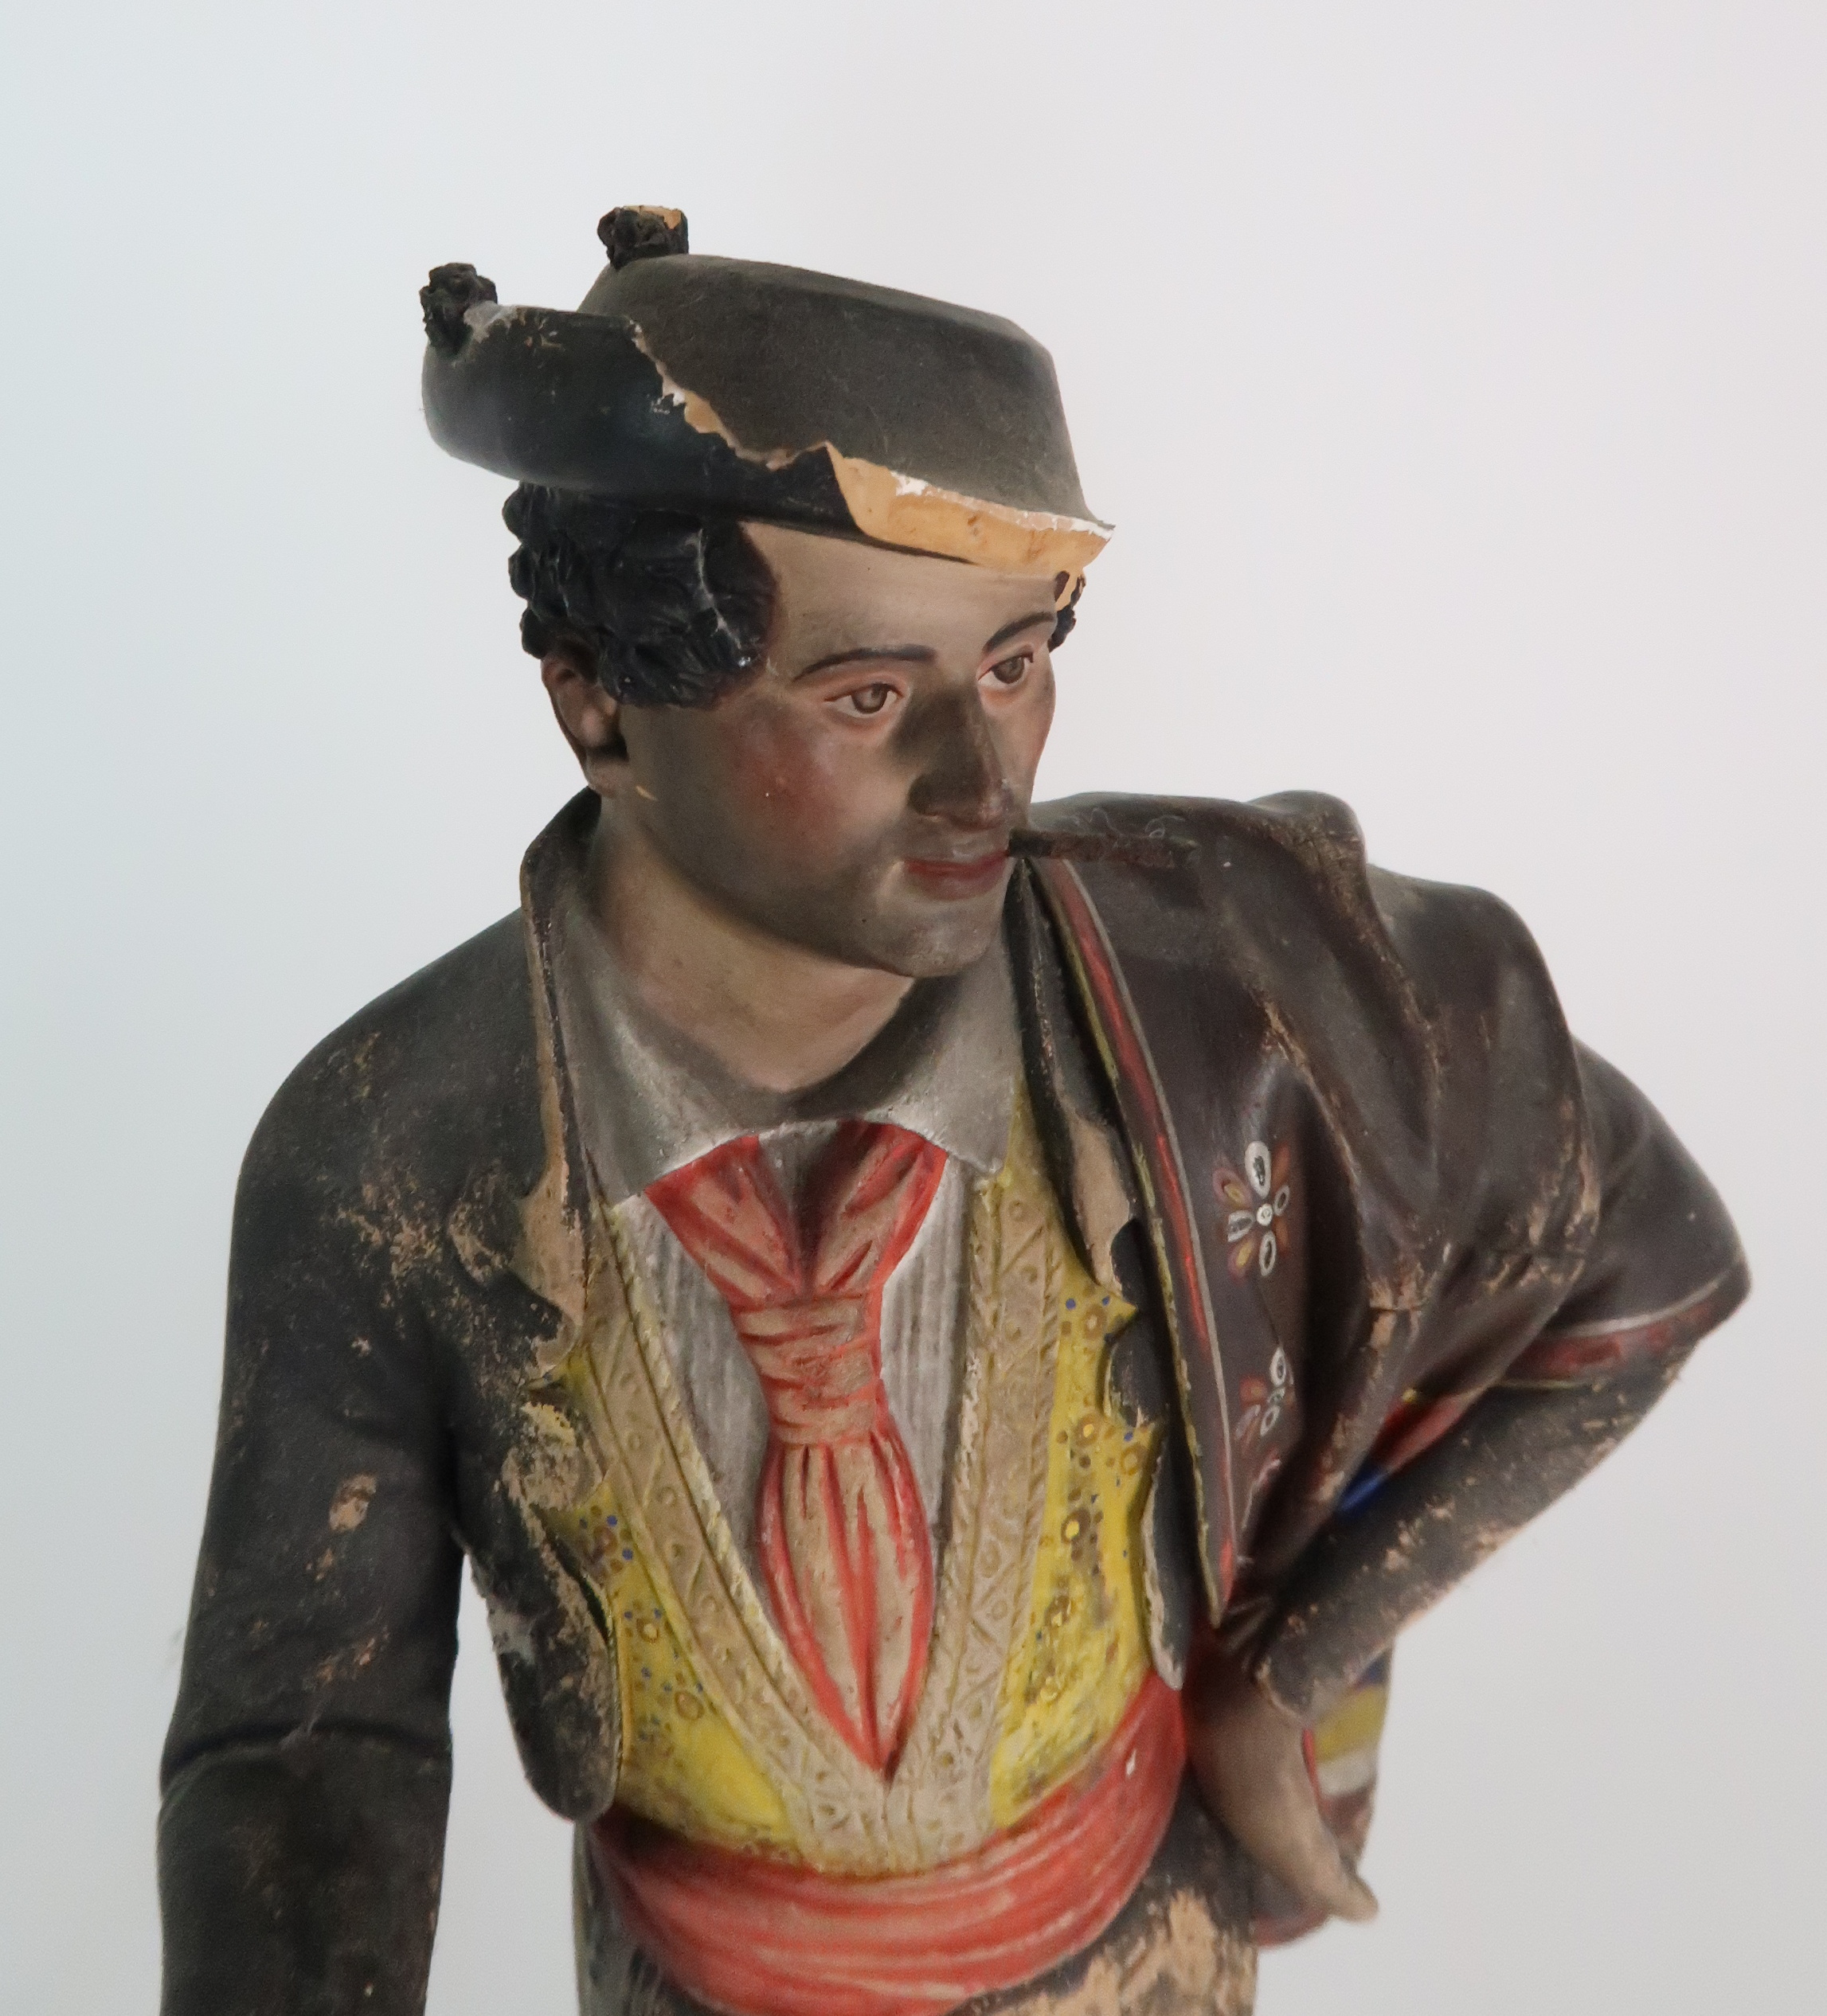 JOSE CUBERO, MALAGA - A PAIR OF MID 19TH CENTURY COLD PAINTED TERRACOTTA FIGURES one a matador, - Image 6 of 8